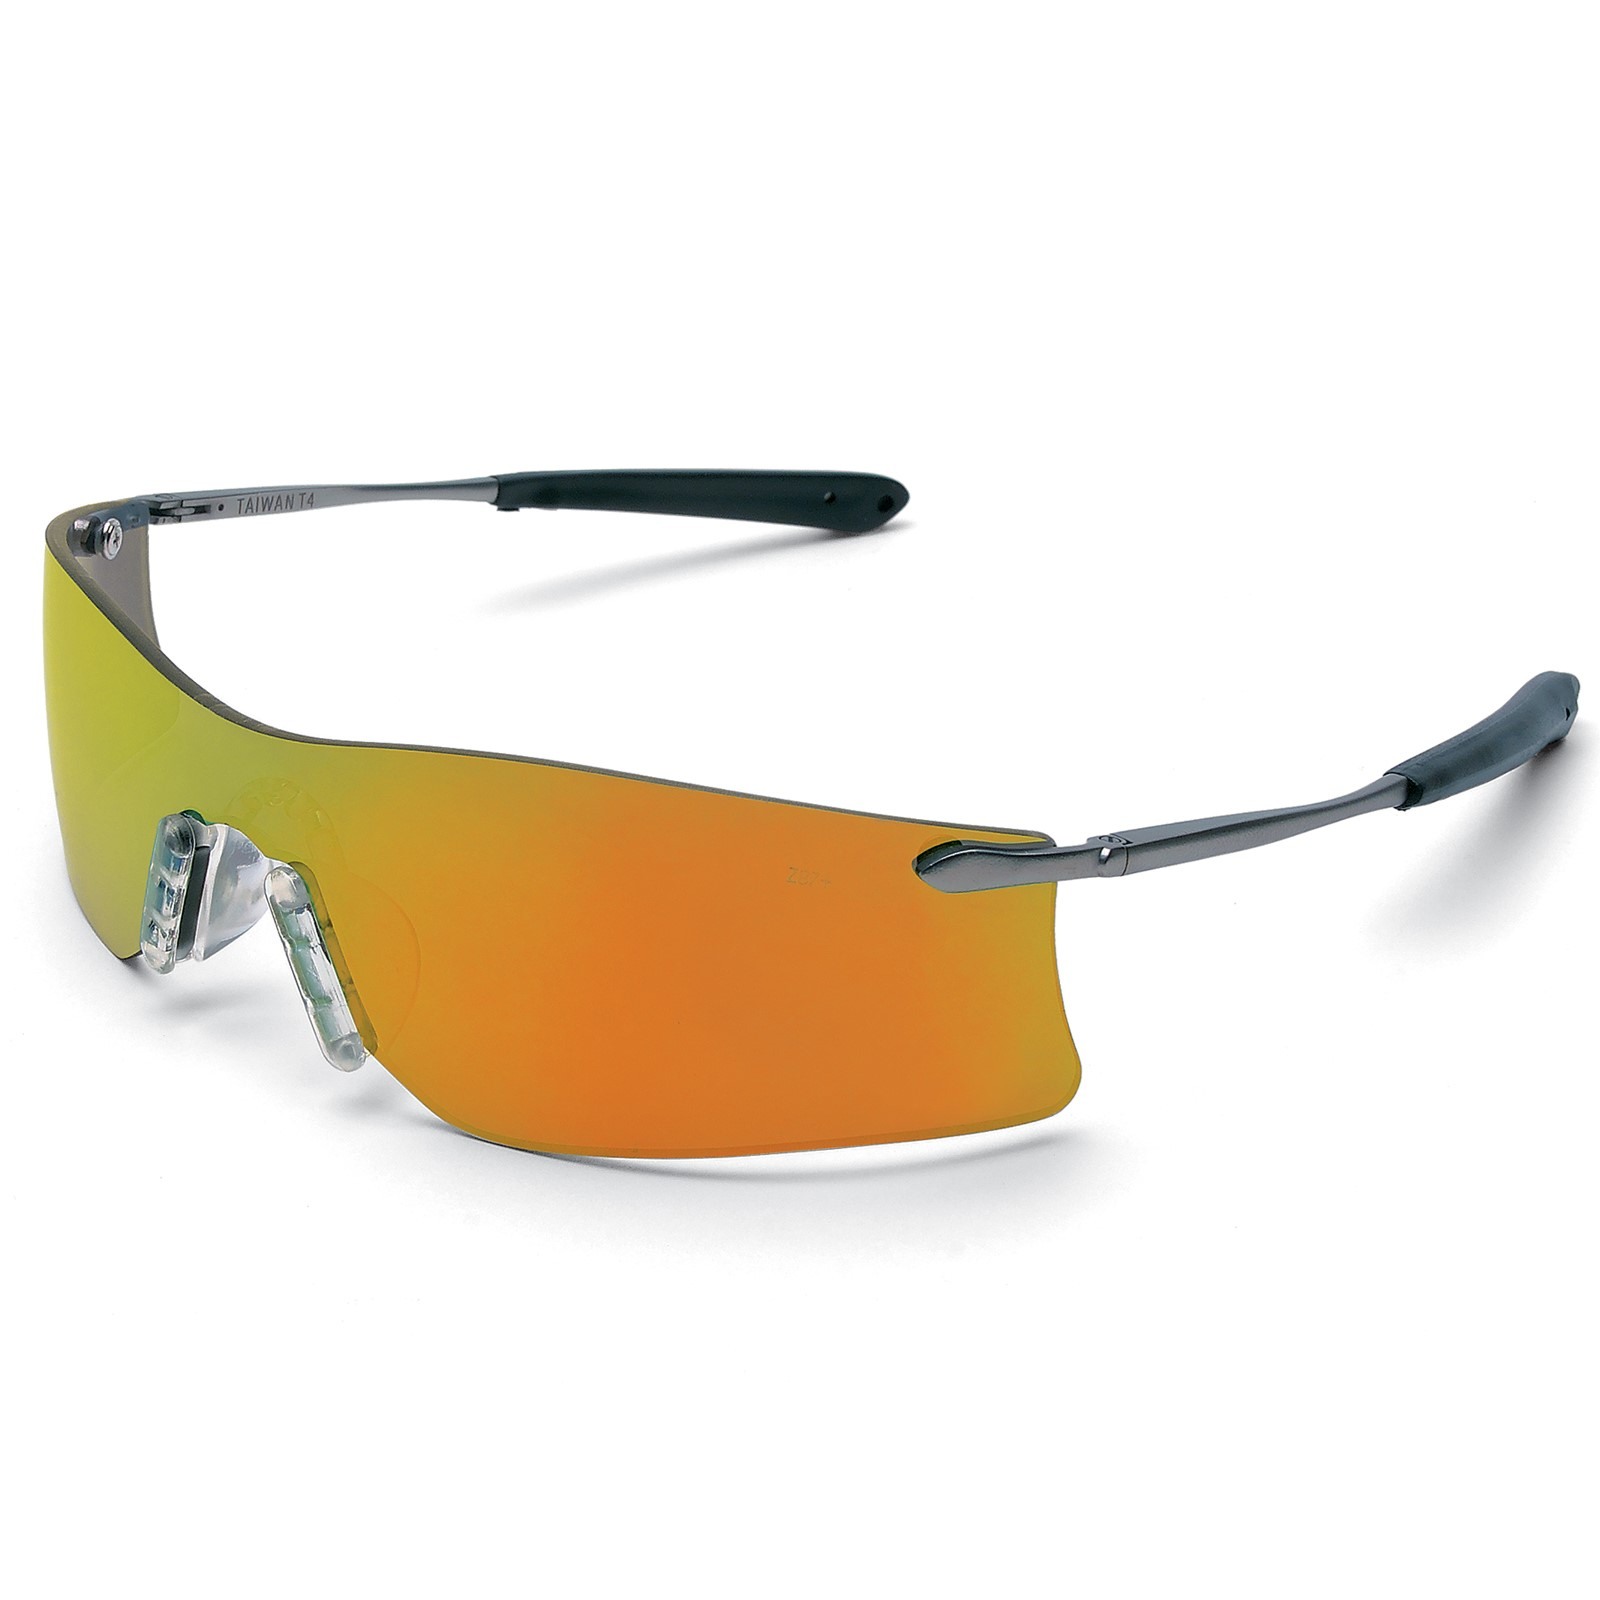 Crews Glasses Rubicon Fire Mirrored Anti-Scratch Lens Safety